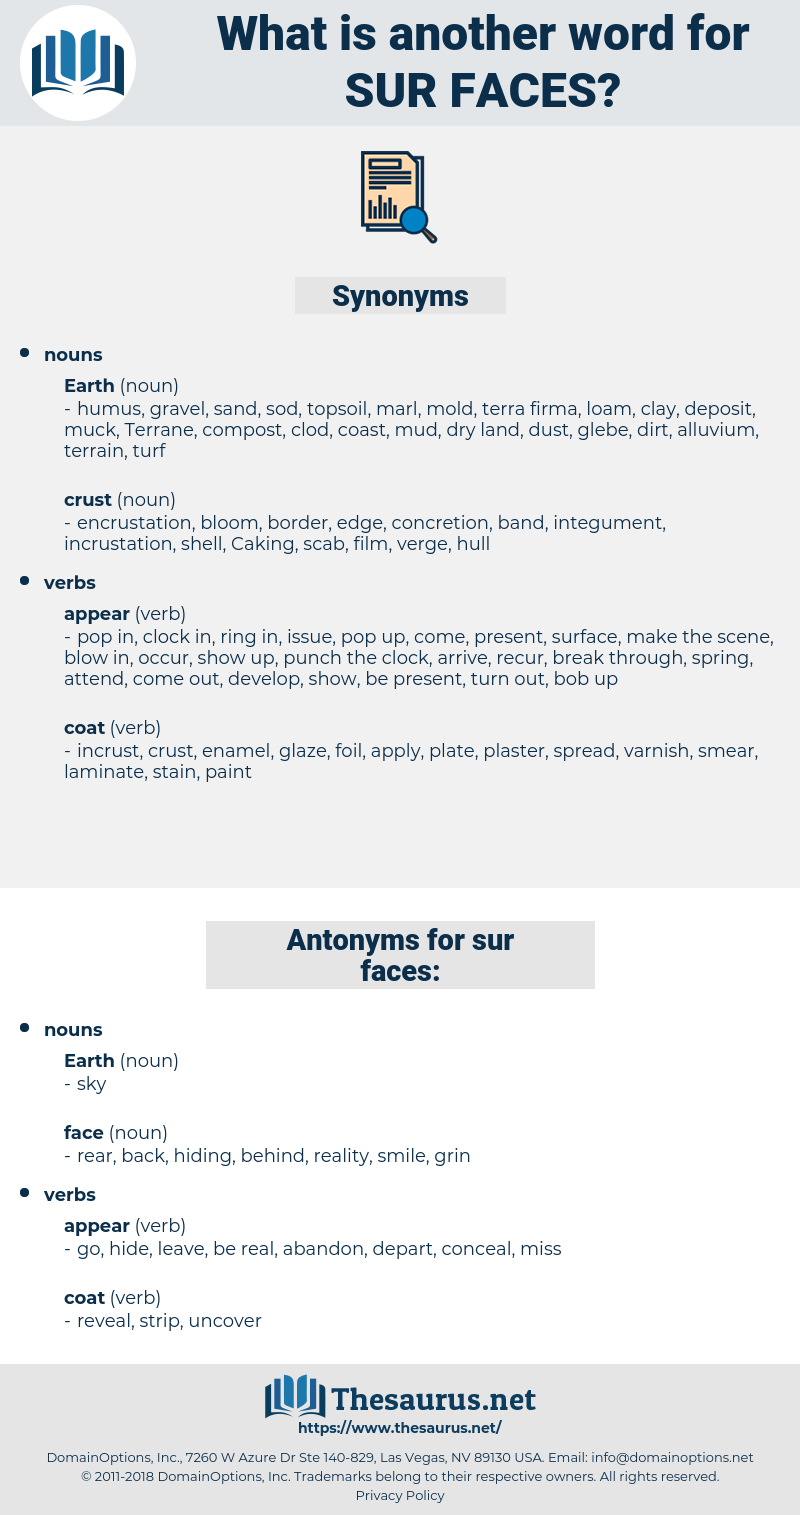 sur faces, synonym sur faces, another word for sur faces, words like sur faces, thesaurus sur faces